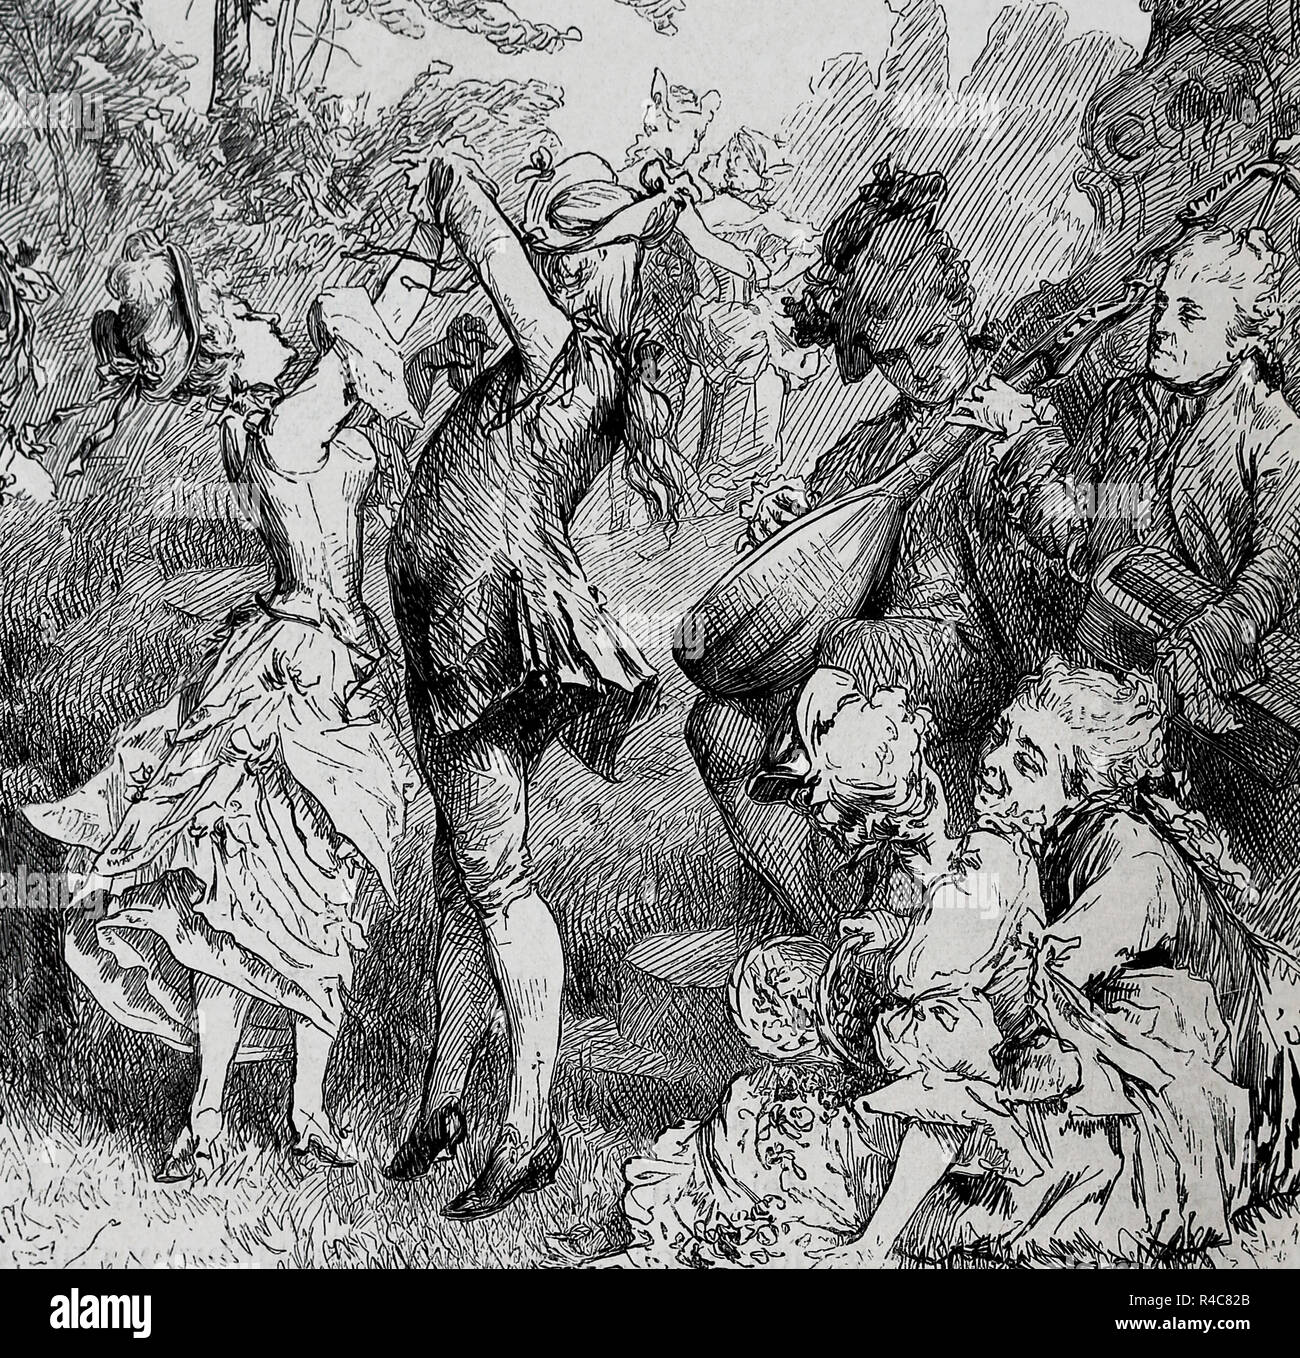 Aristocracy. 18th century. Dance scene. Engraving of Germania, 1882. - Stock Image